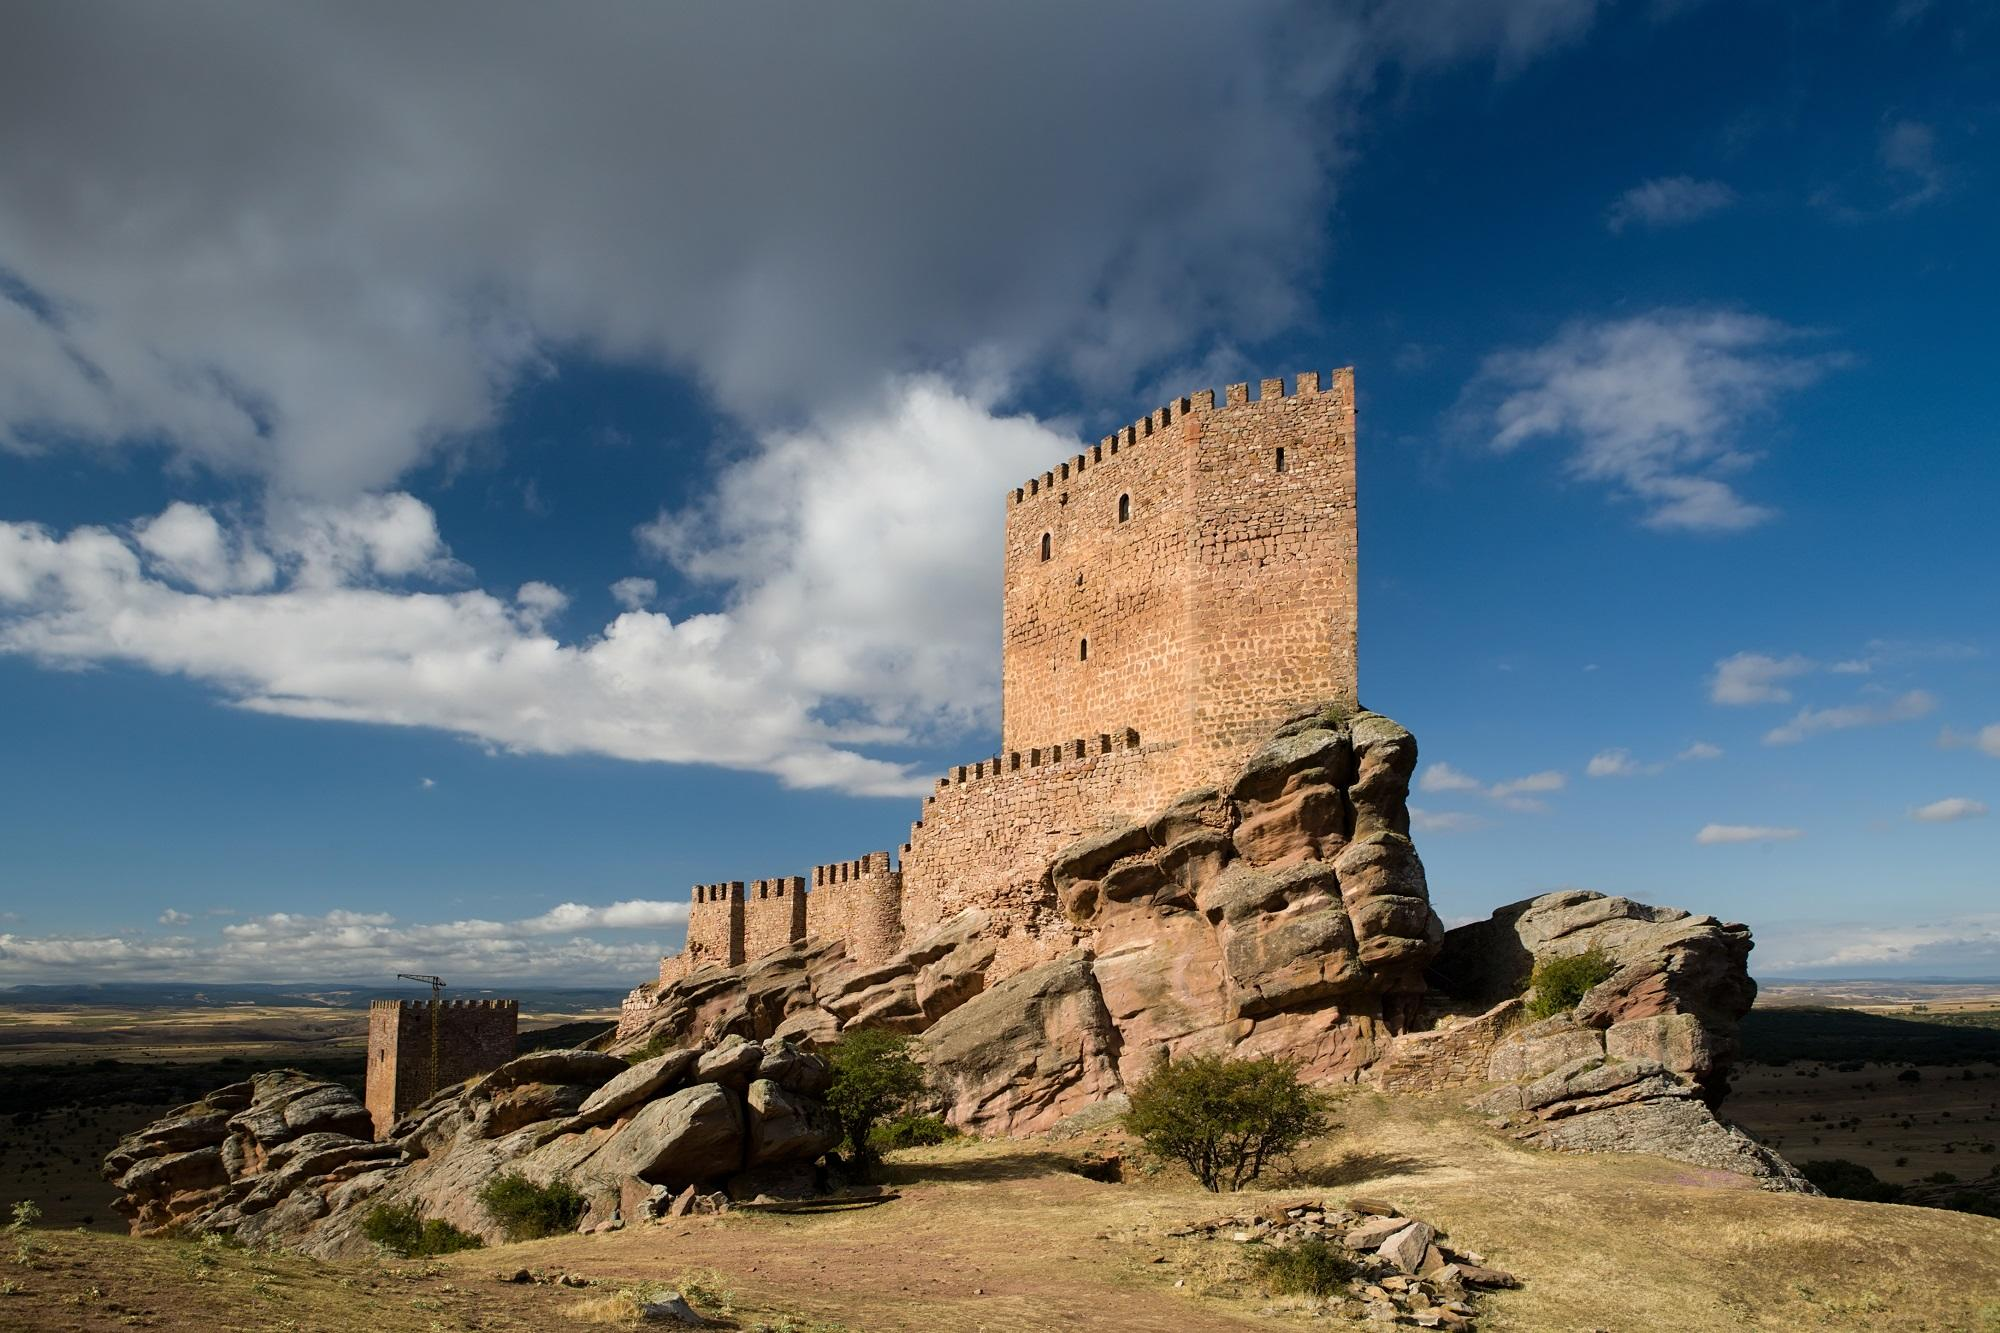 5 Game Of Thrones Locations You Can Visit In Real Life